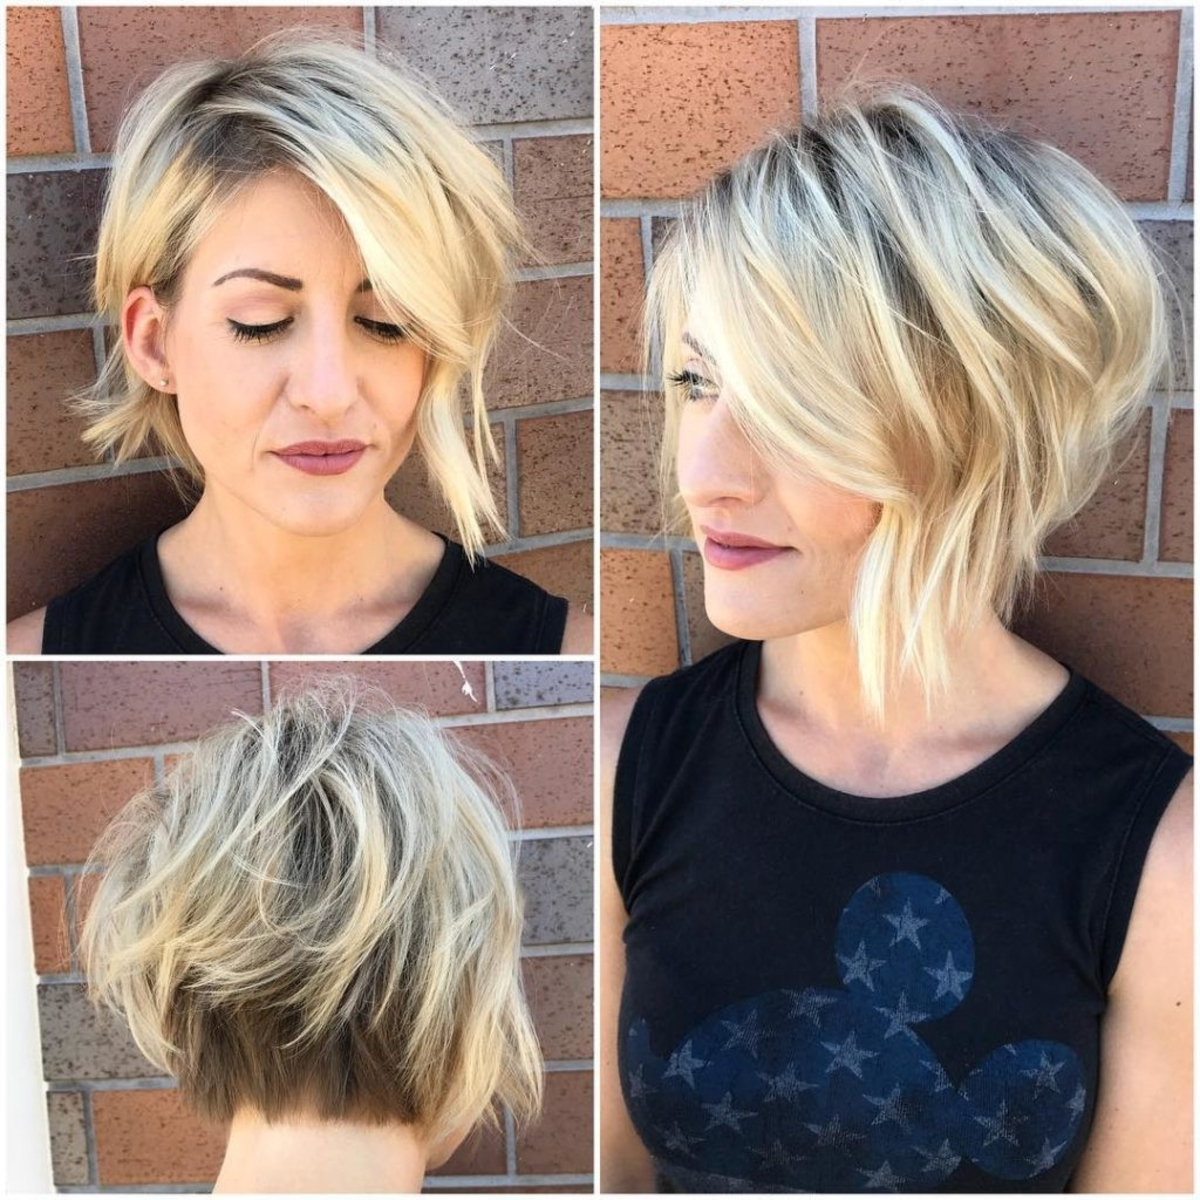 Famous Edgy Textured Bob Hairstyles Throughout 30 Modern Hairstyles For Women Over 30 That Will Make You (View 8 of 20)